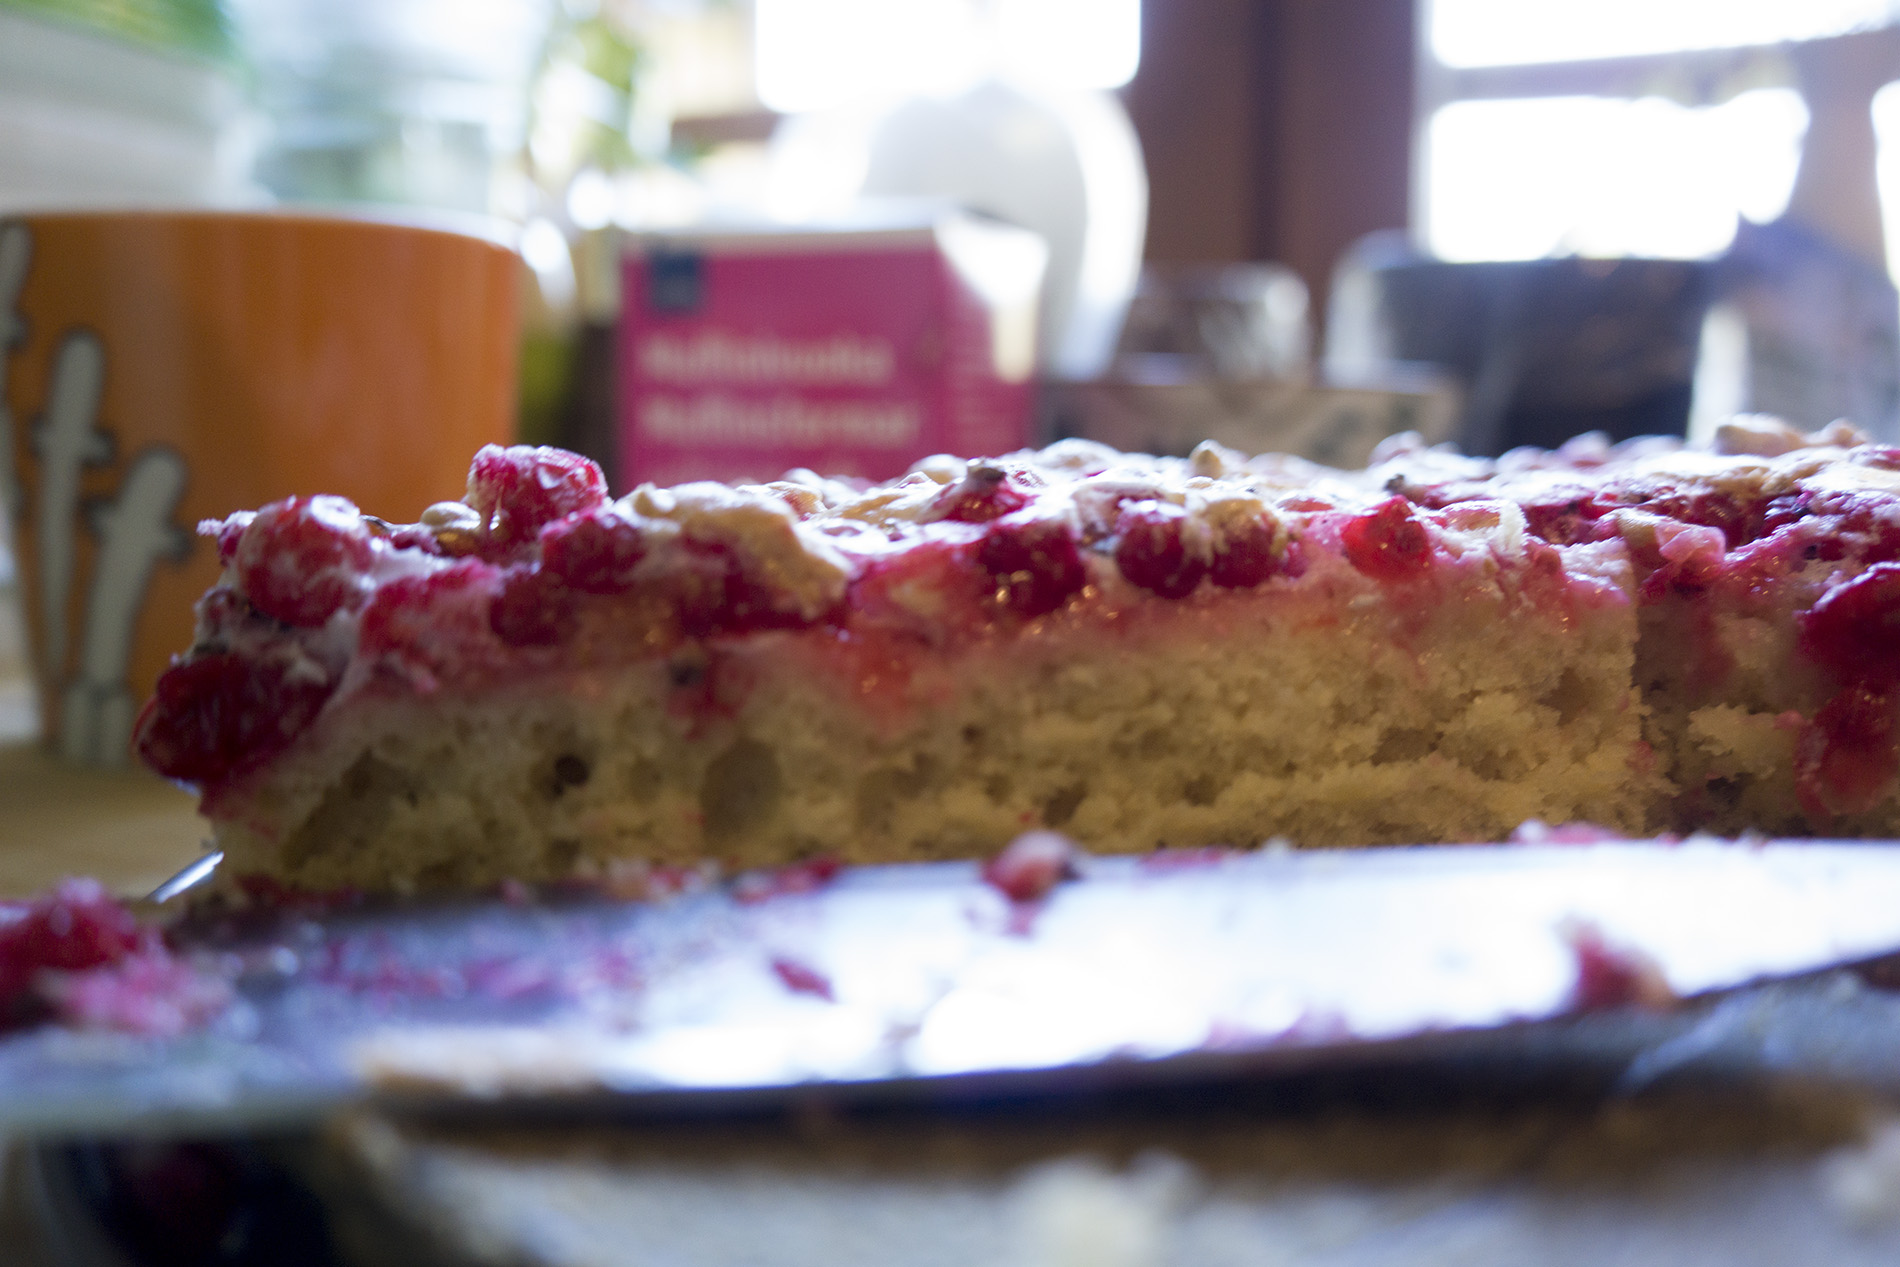 Delicious Ribisel cake made from fresh red currants